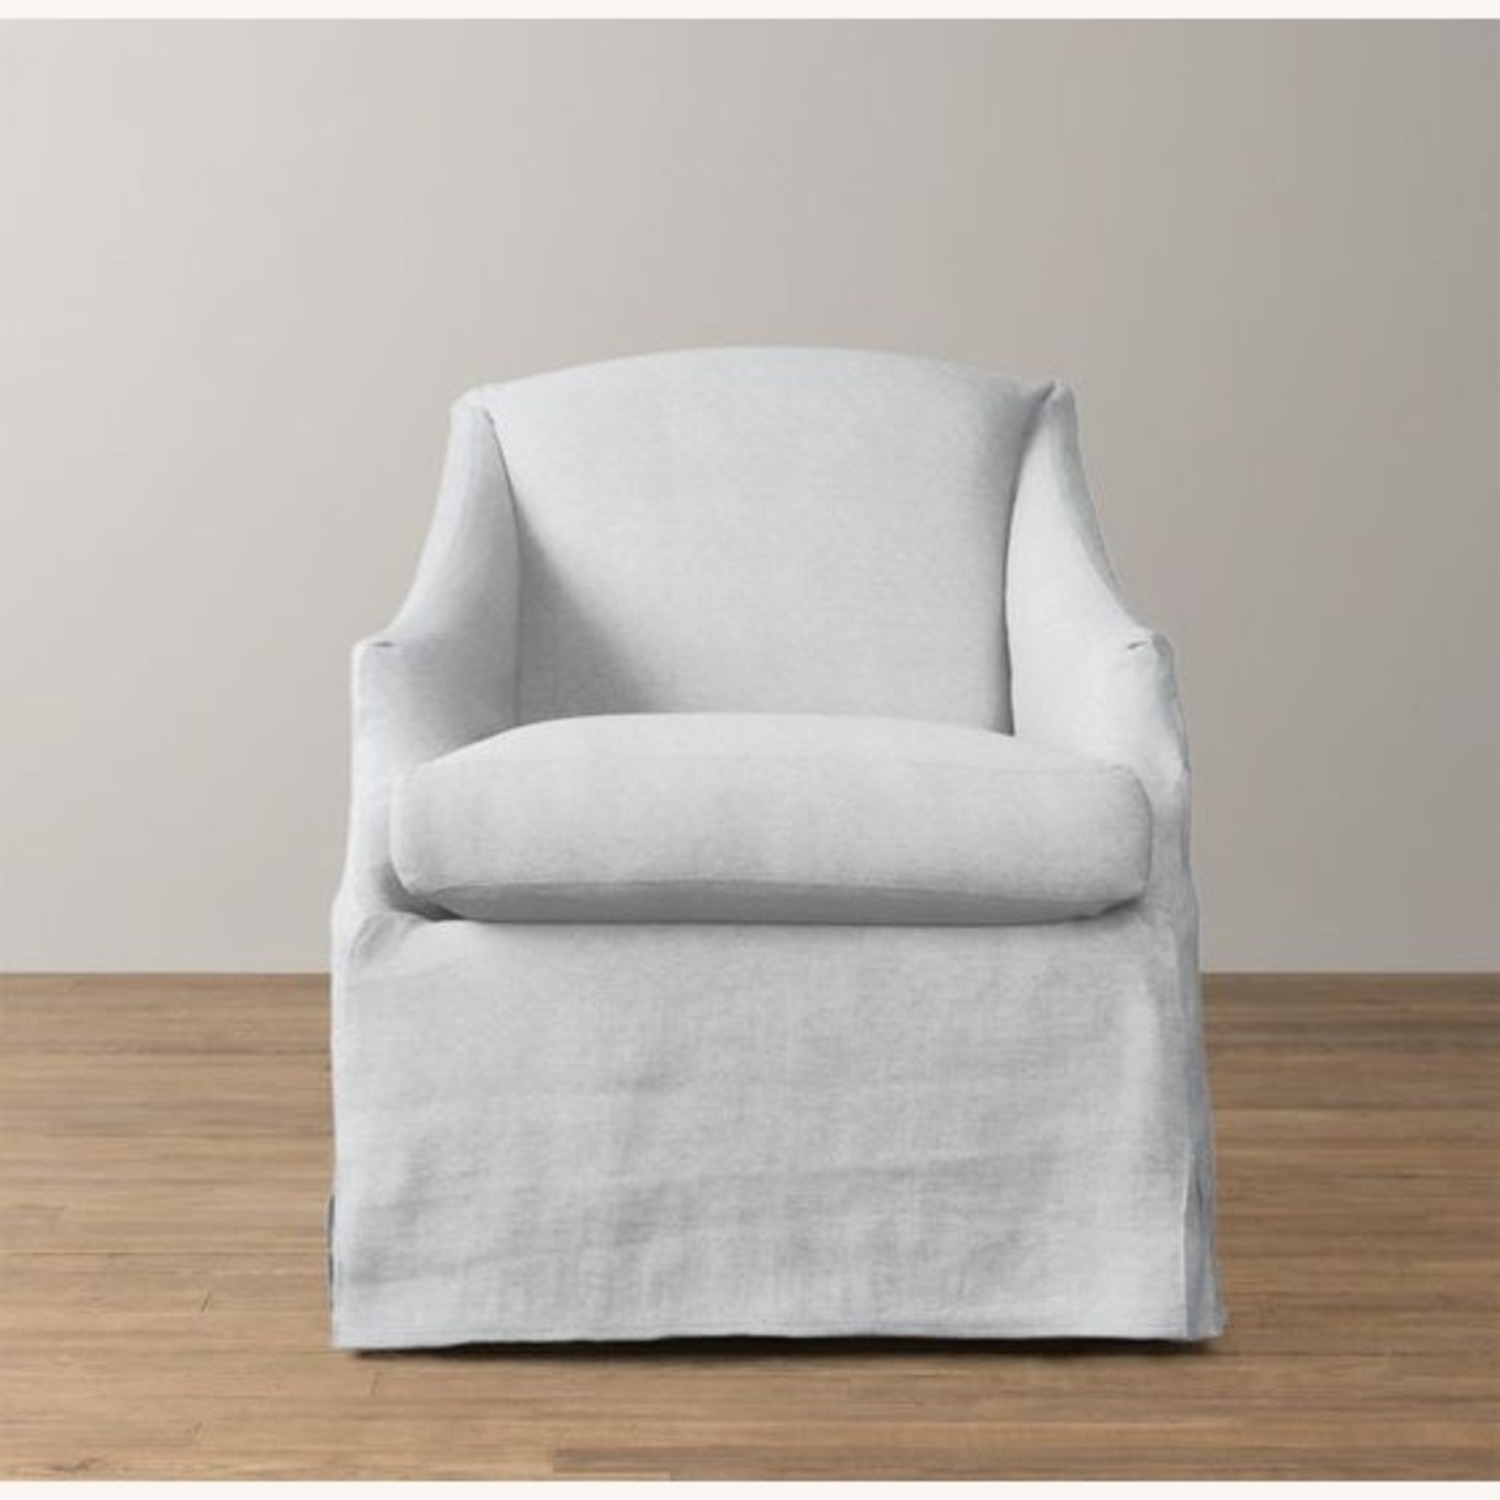 Restoration Hardware Slipcovered Swivel Glider - image-1